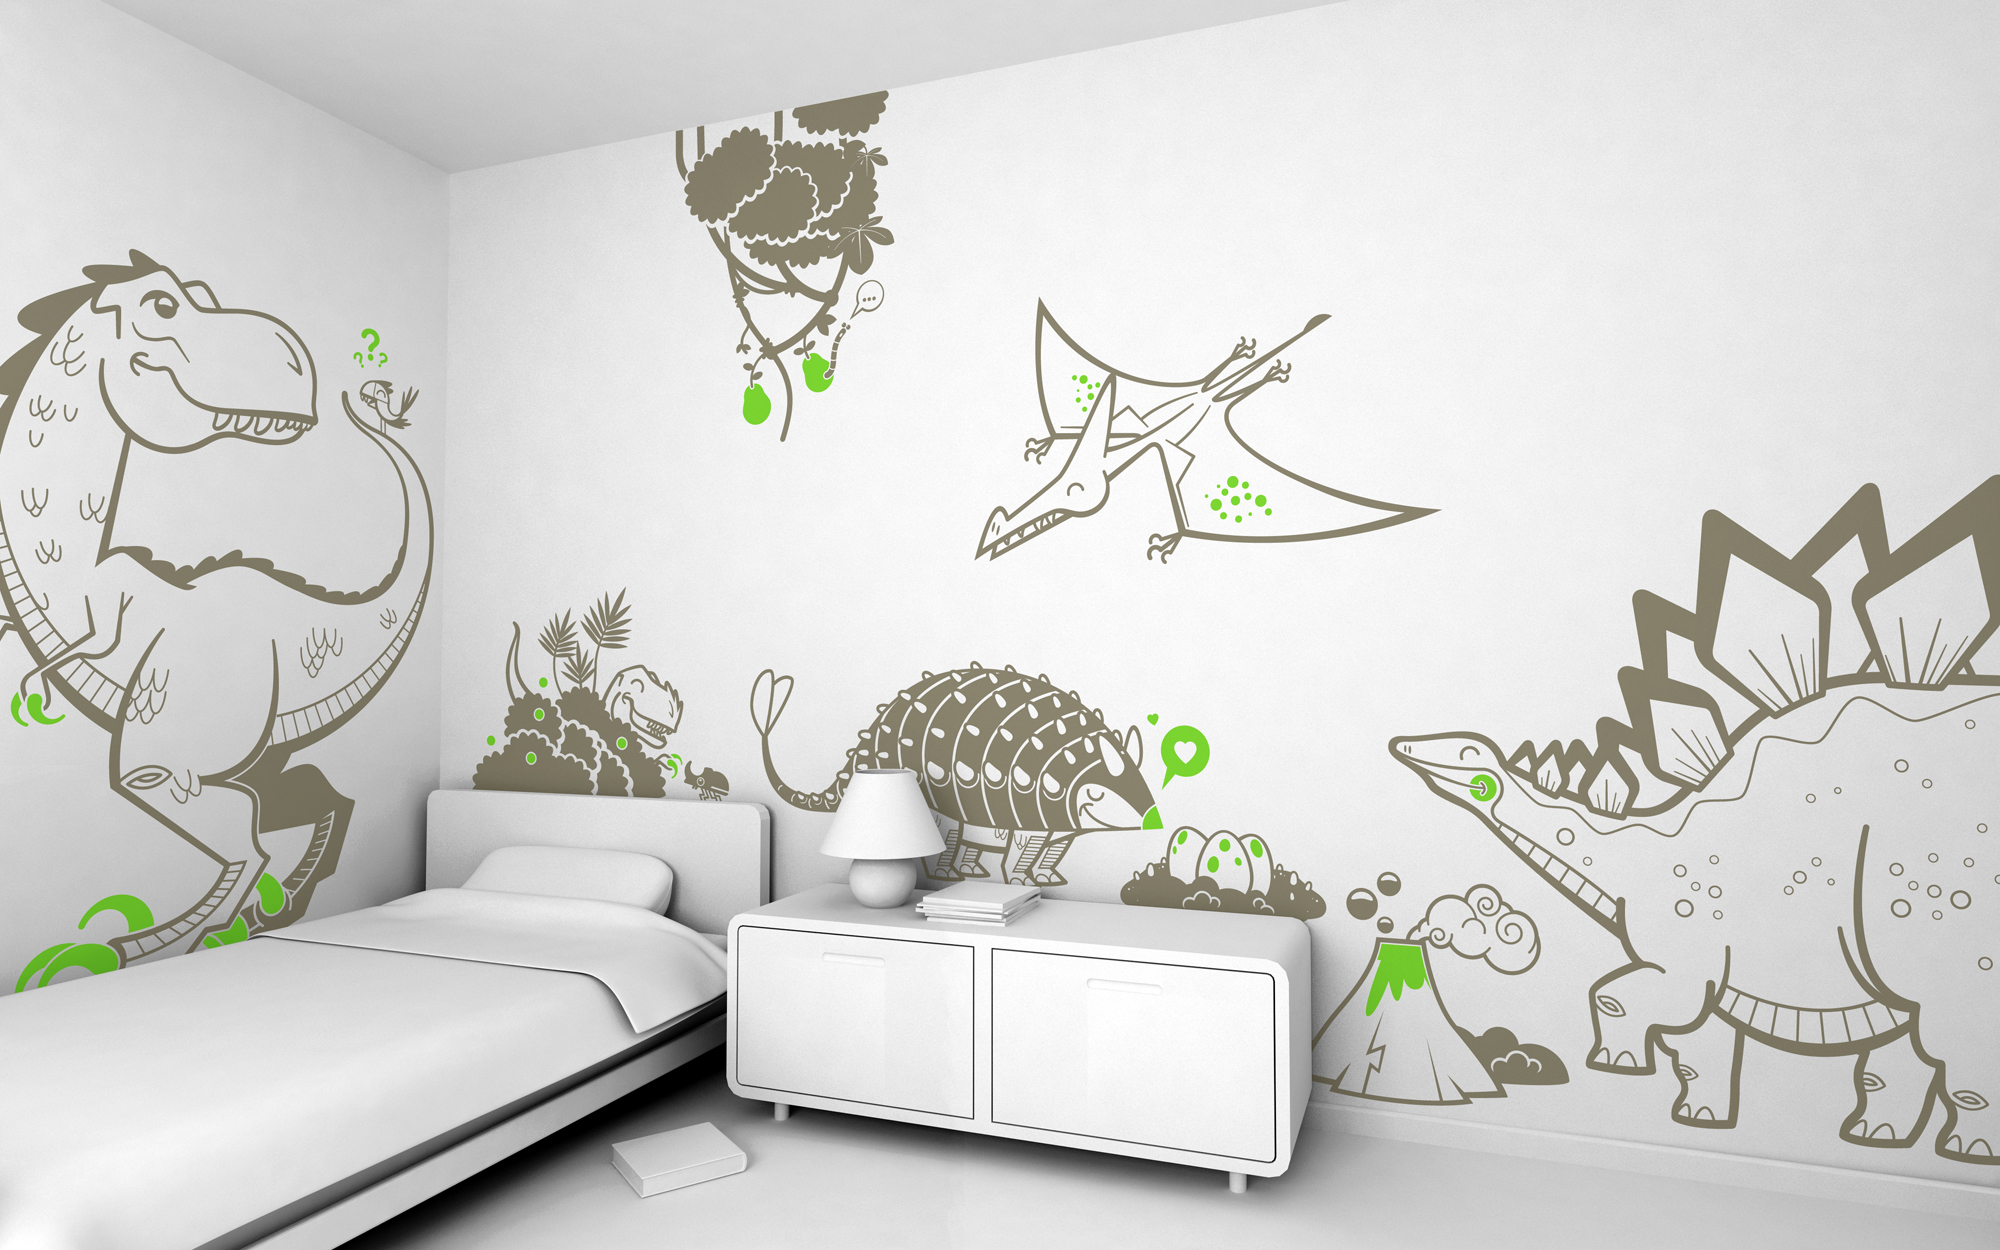 Giant kids wall decals by e glue studio at Wall stickers for bedrooms